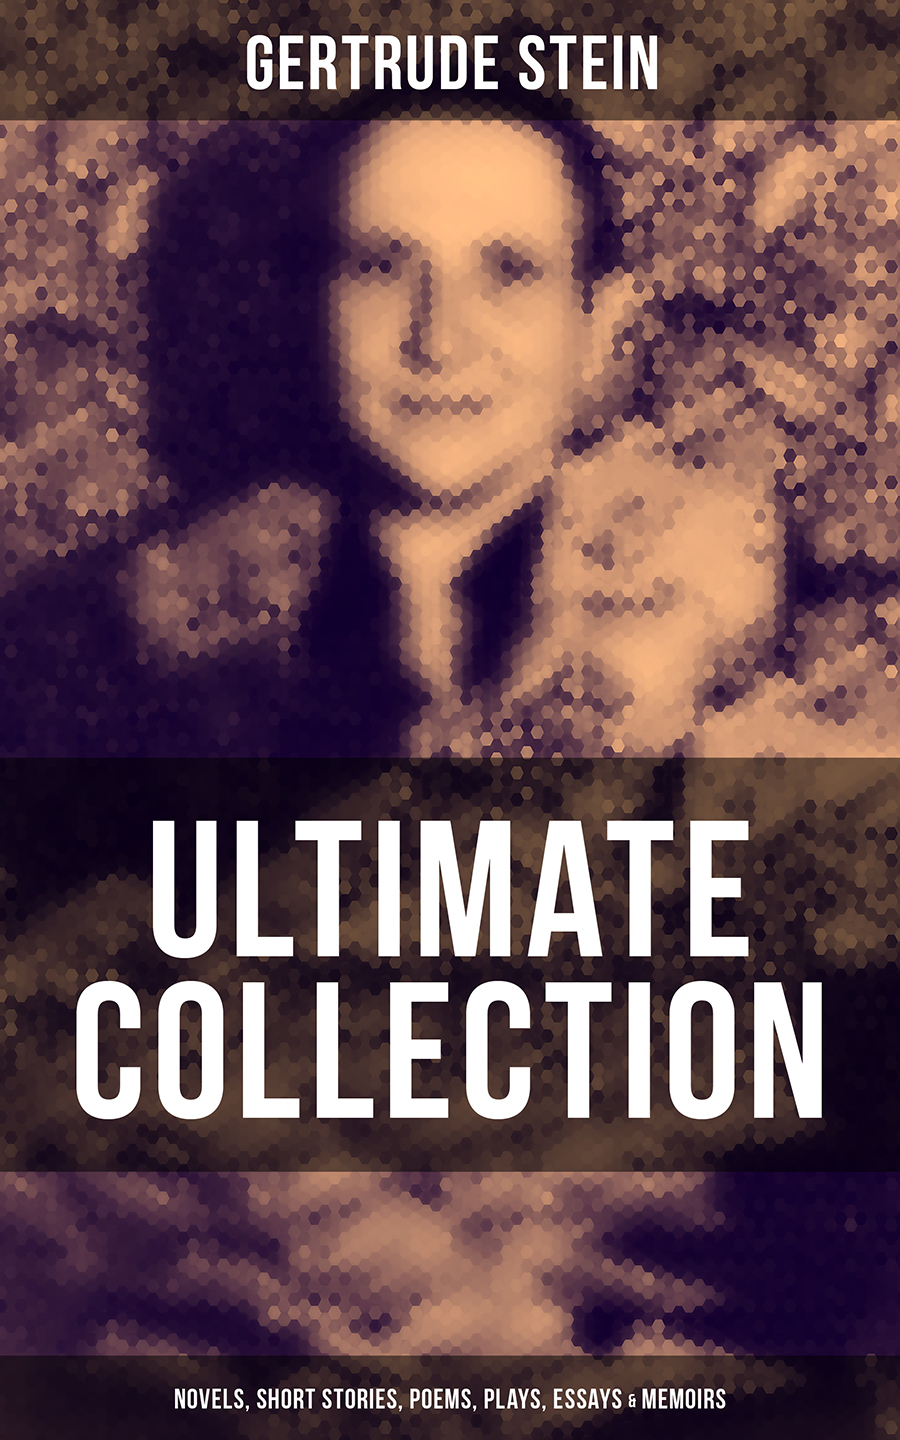 Фото - Gertrude Stein GERTRUDE STEIN Ultimate Collection: Novels, Short Stories, Poems, Plays, Essays & Memoirs lillian gertrude kimball elementary english 1